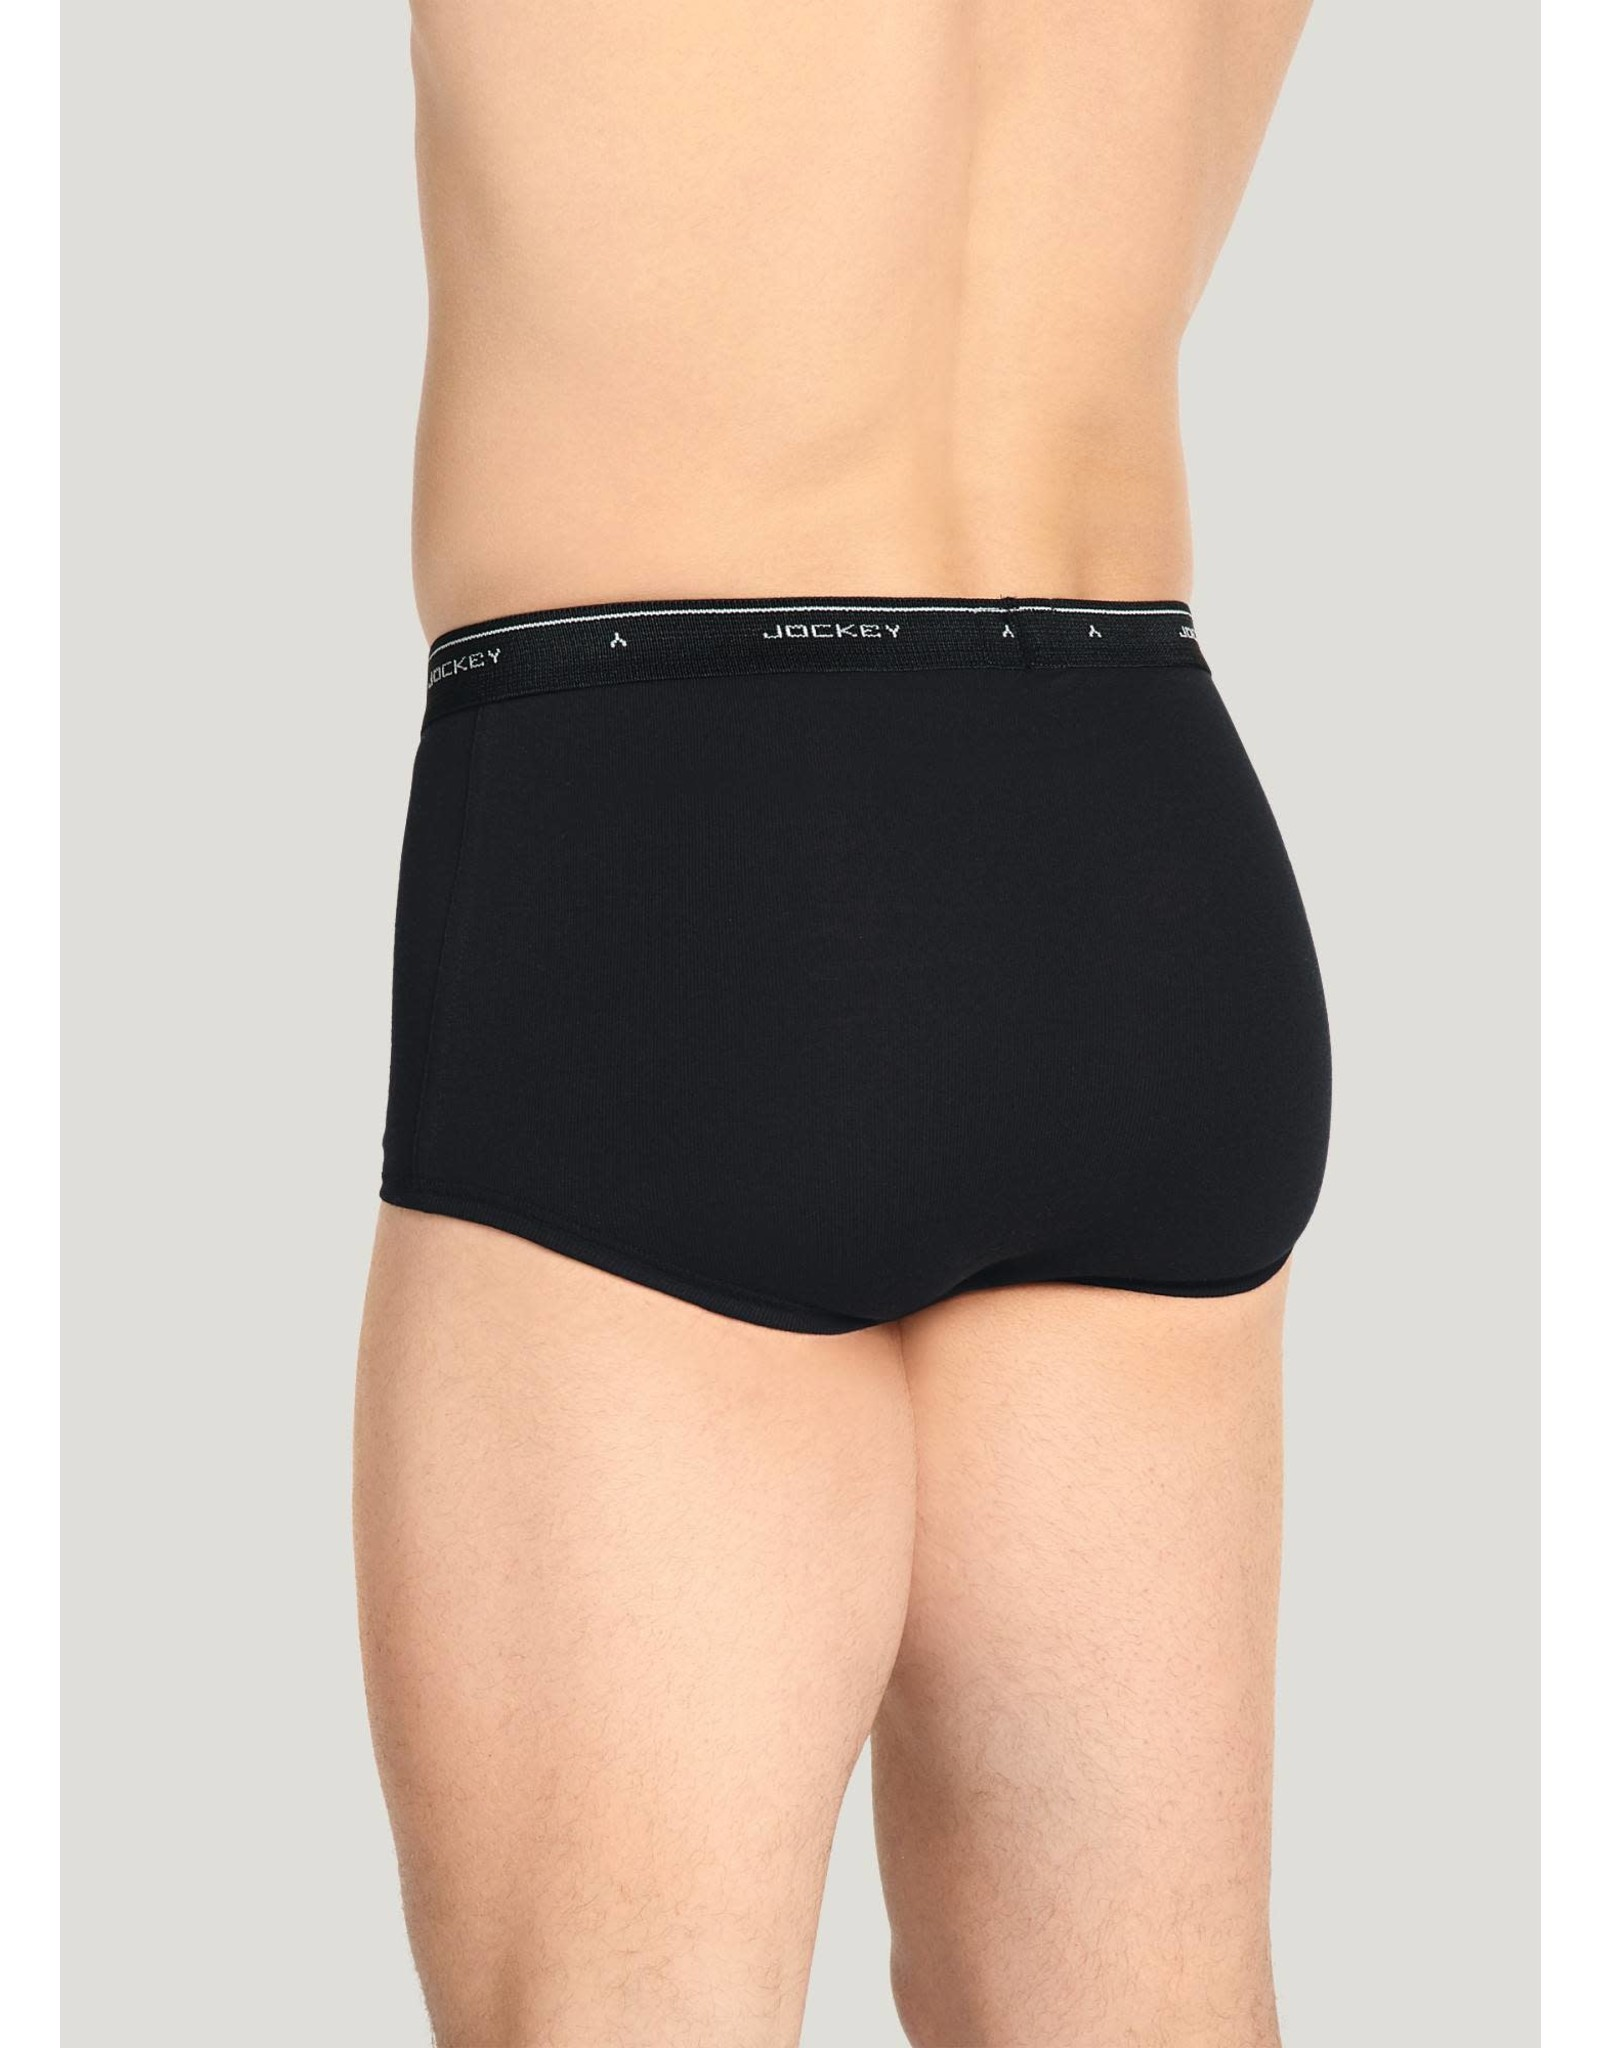 JOCKEY Classic Knits 100% Cotton, Full Rise Brief